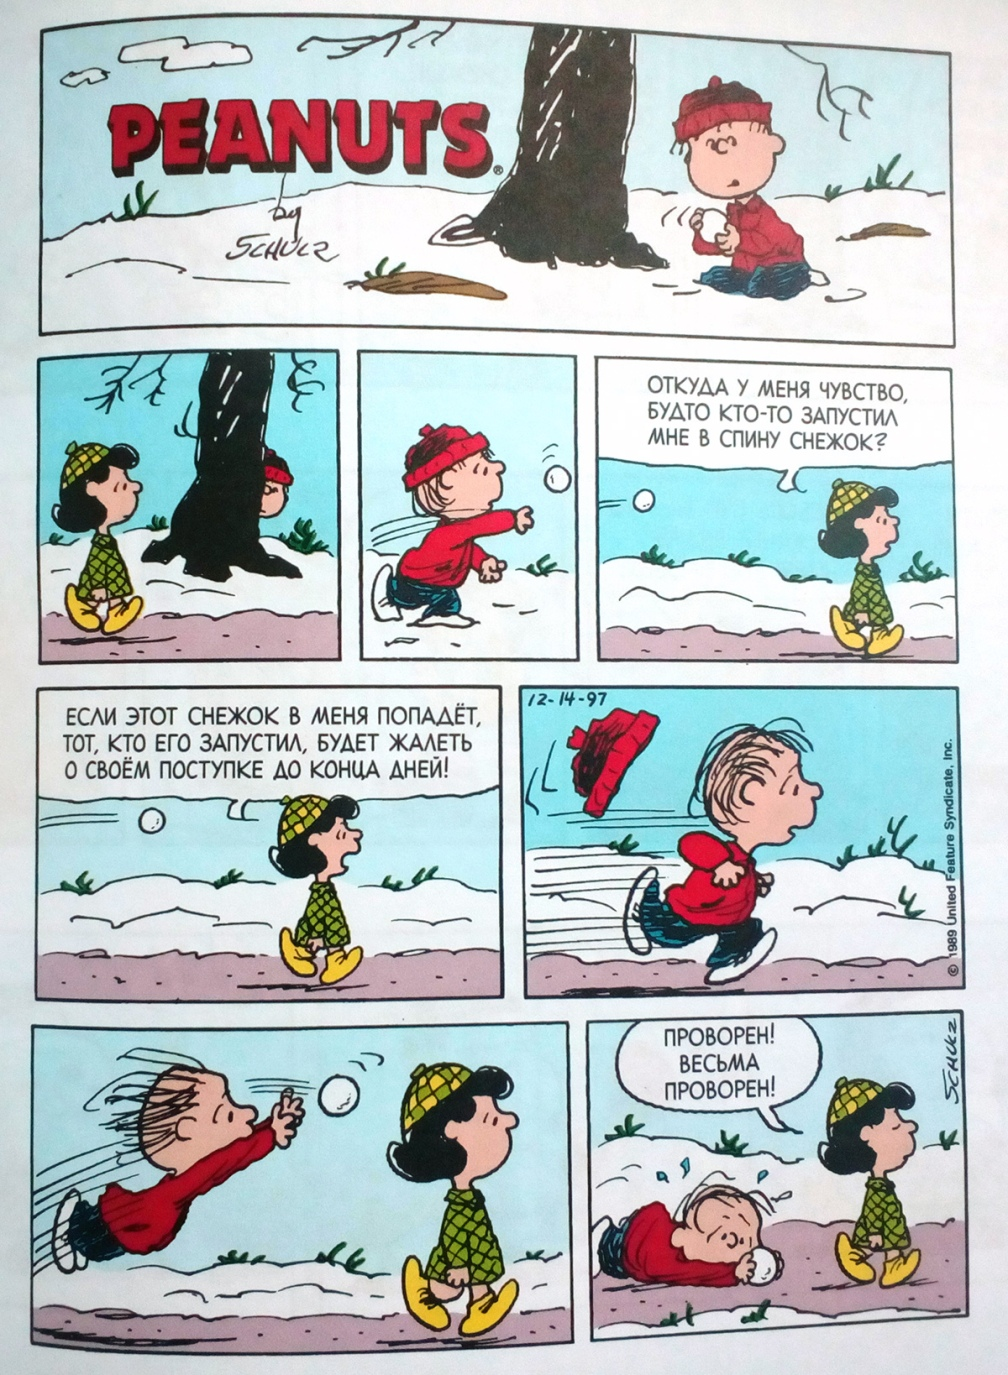 Charlie Brown - 12-14-97 - snowball (possibilites of comics medium)